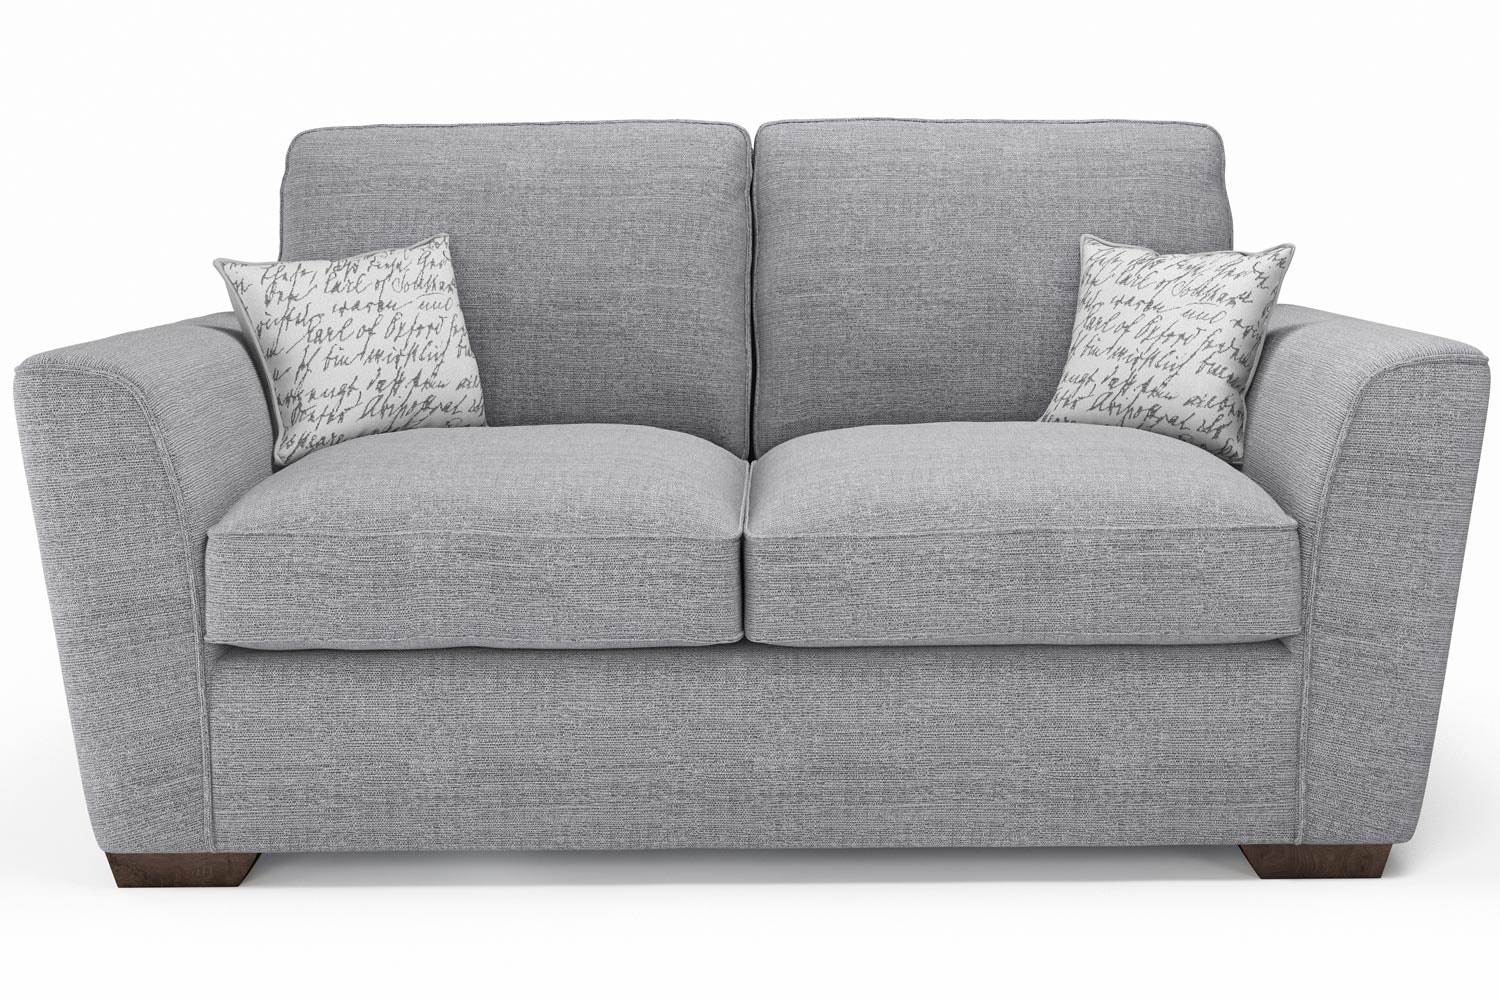 fantasia 2 seater sofa ireland rh harveynorman ie two seater sofa ikea two seater sofa design